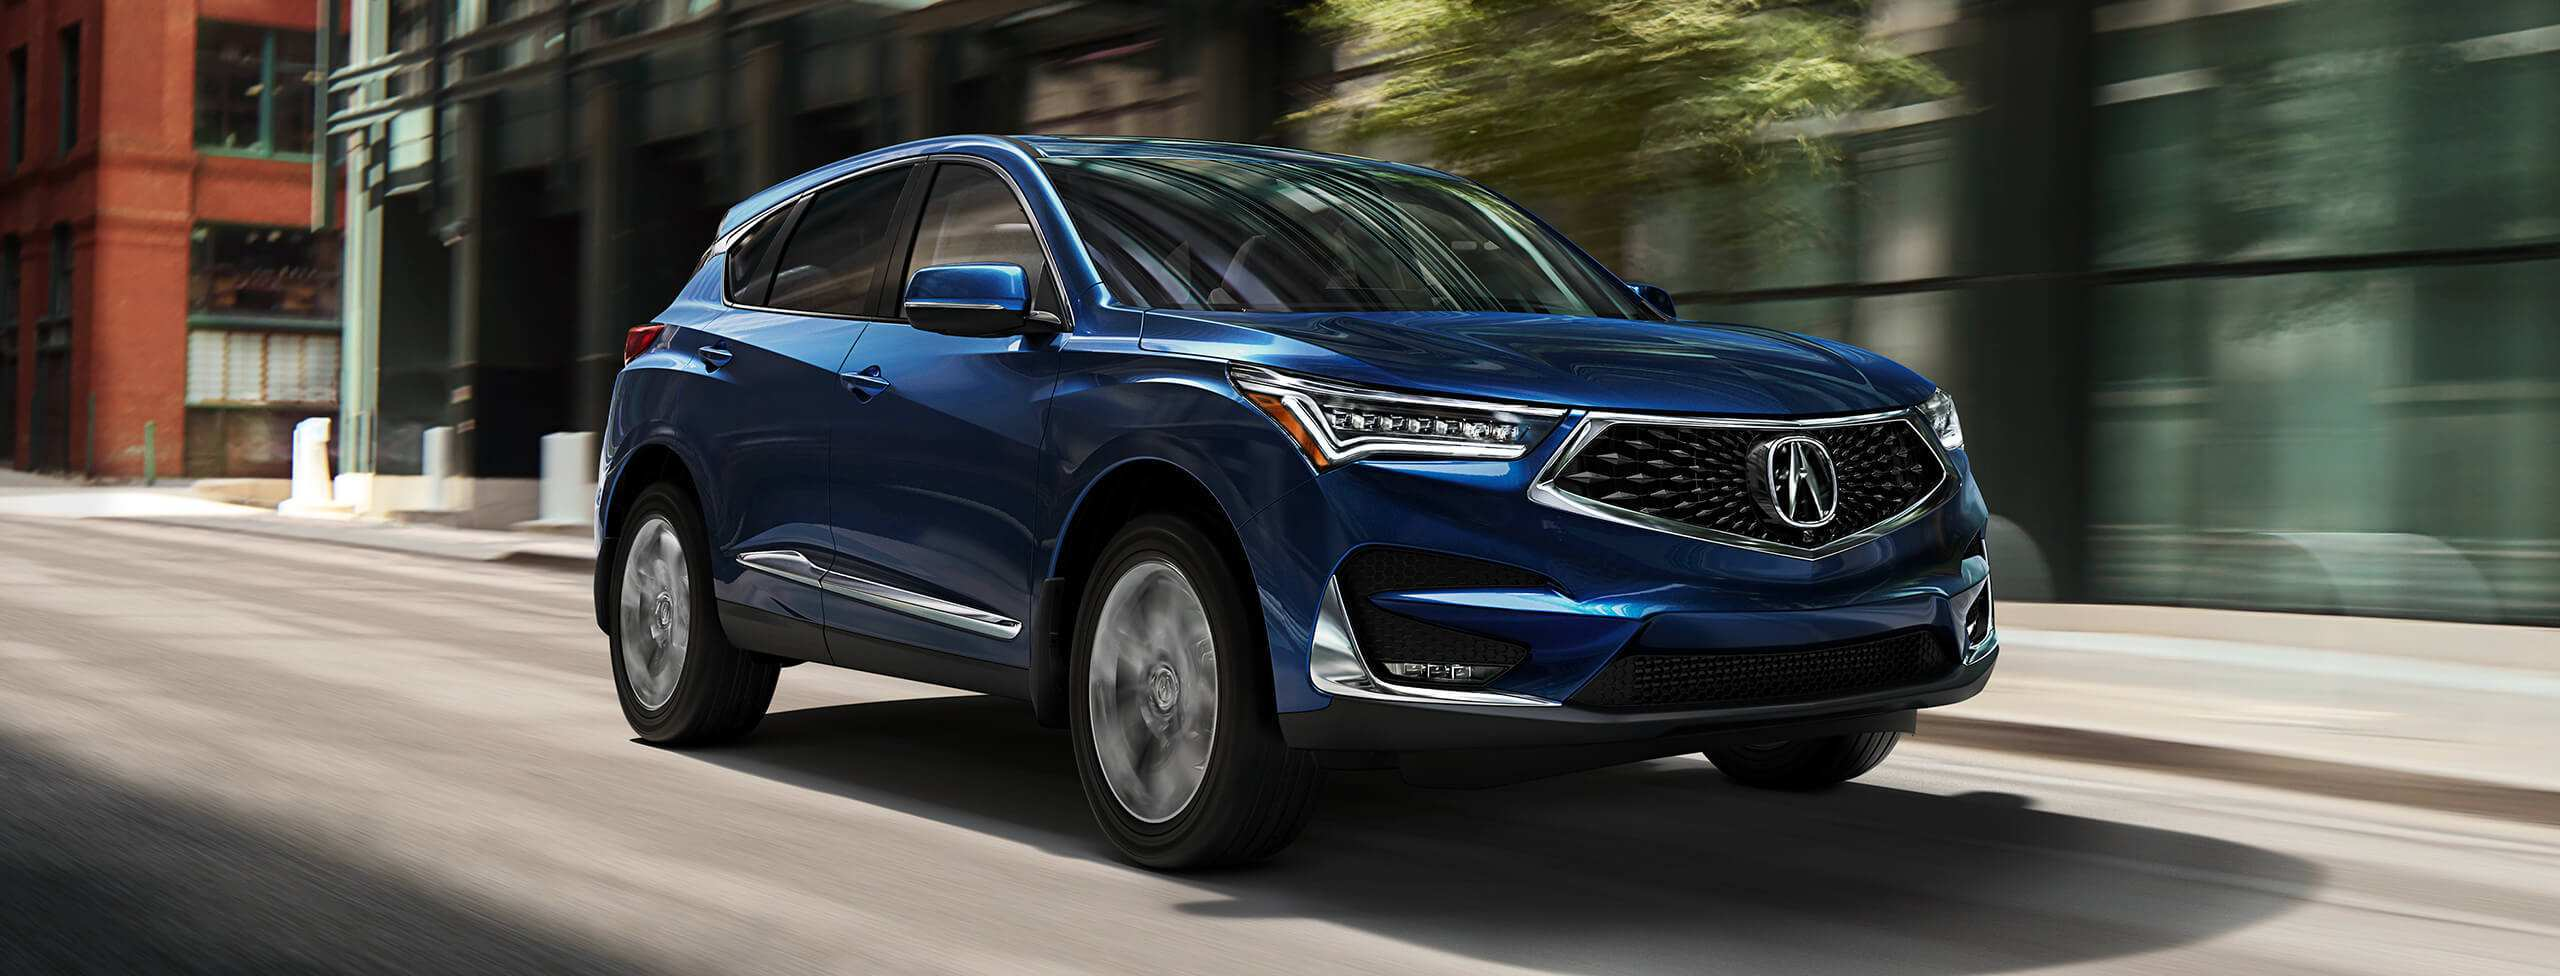 43 New Acura Rdx 2020 Review History by Acura Rdx 2020 Review